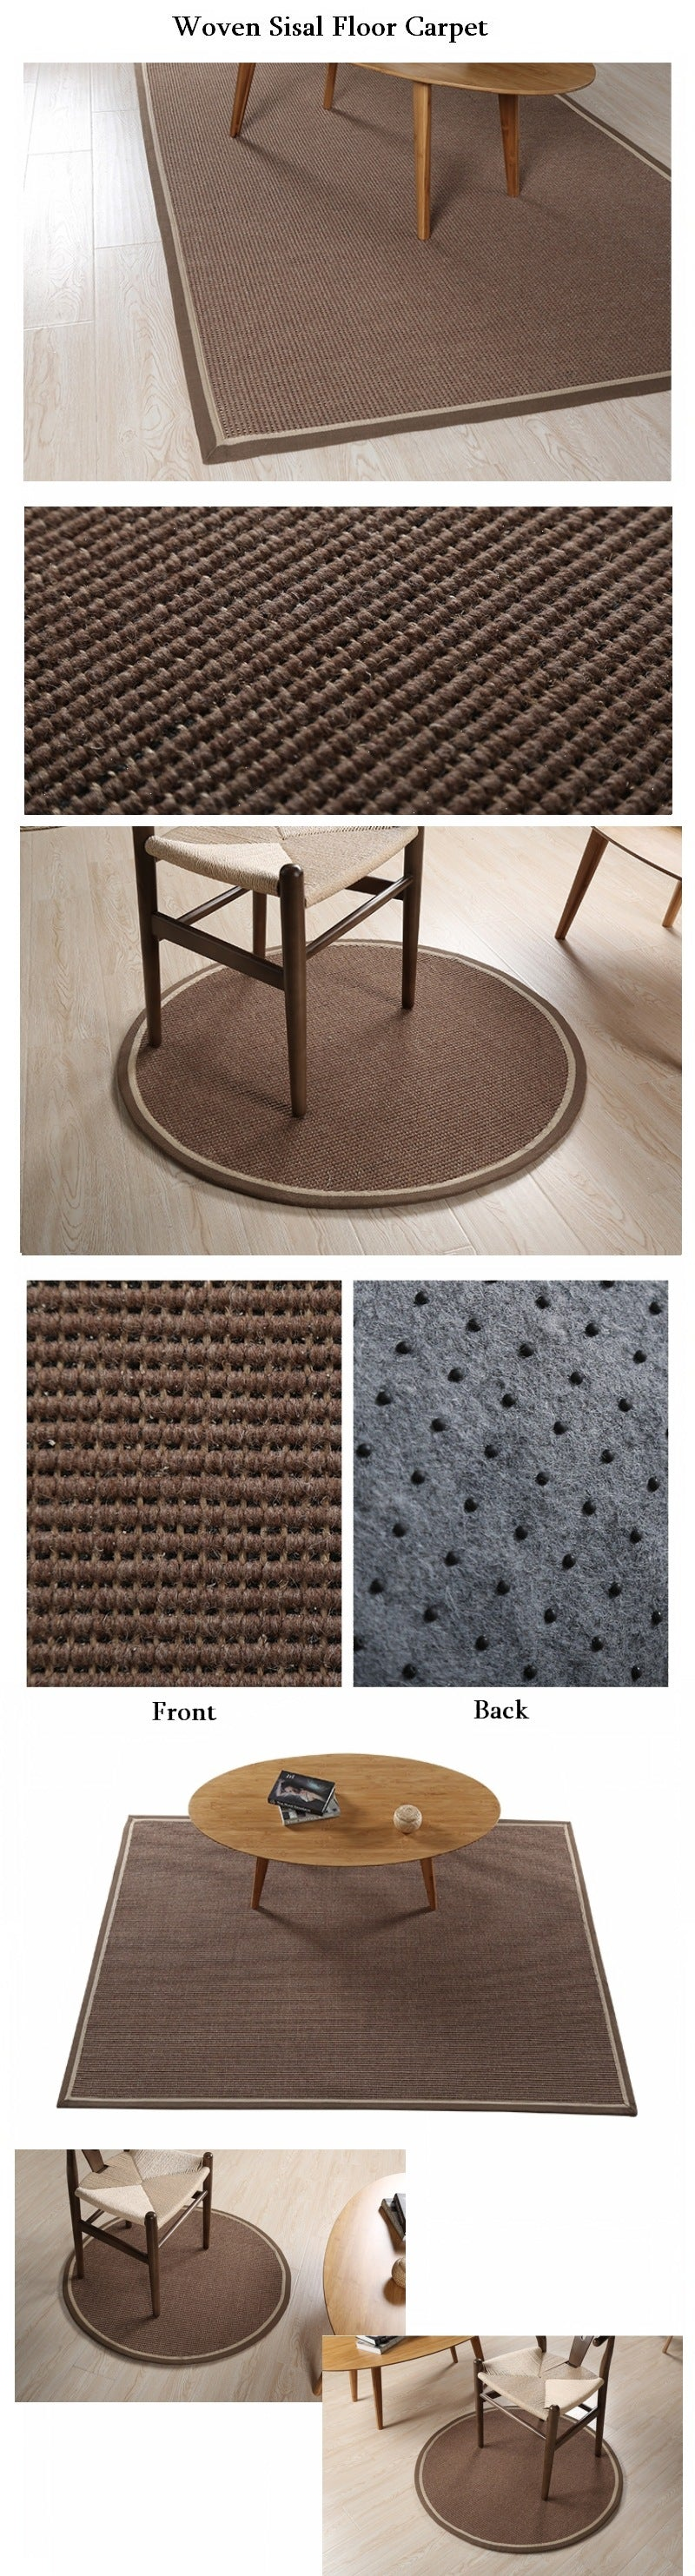 Large Sisal Carpet, Woven Carpet, Rustic Floor Carpet and Rugs